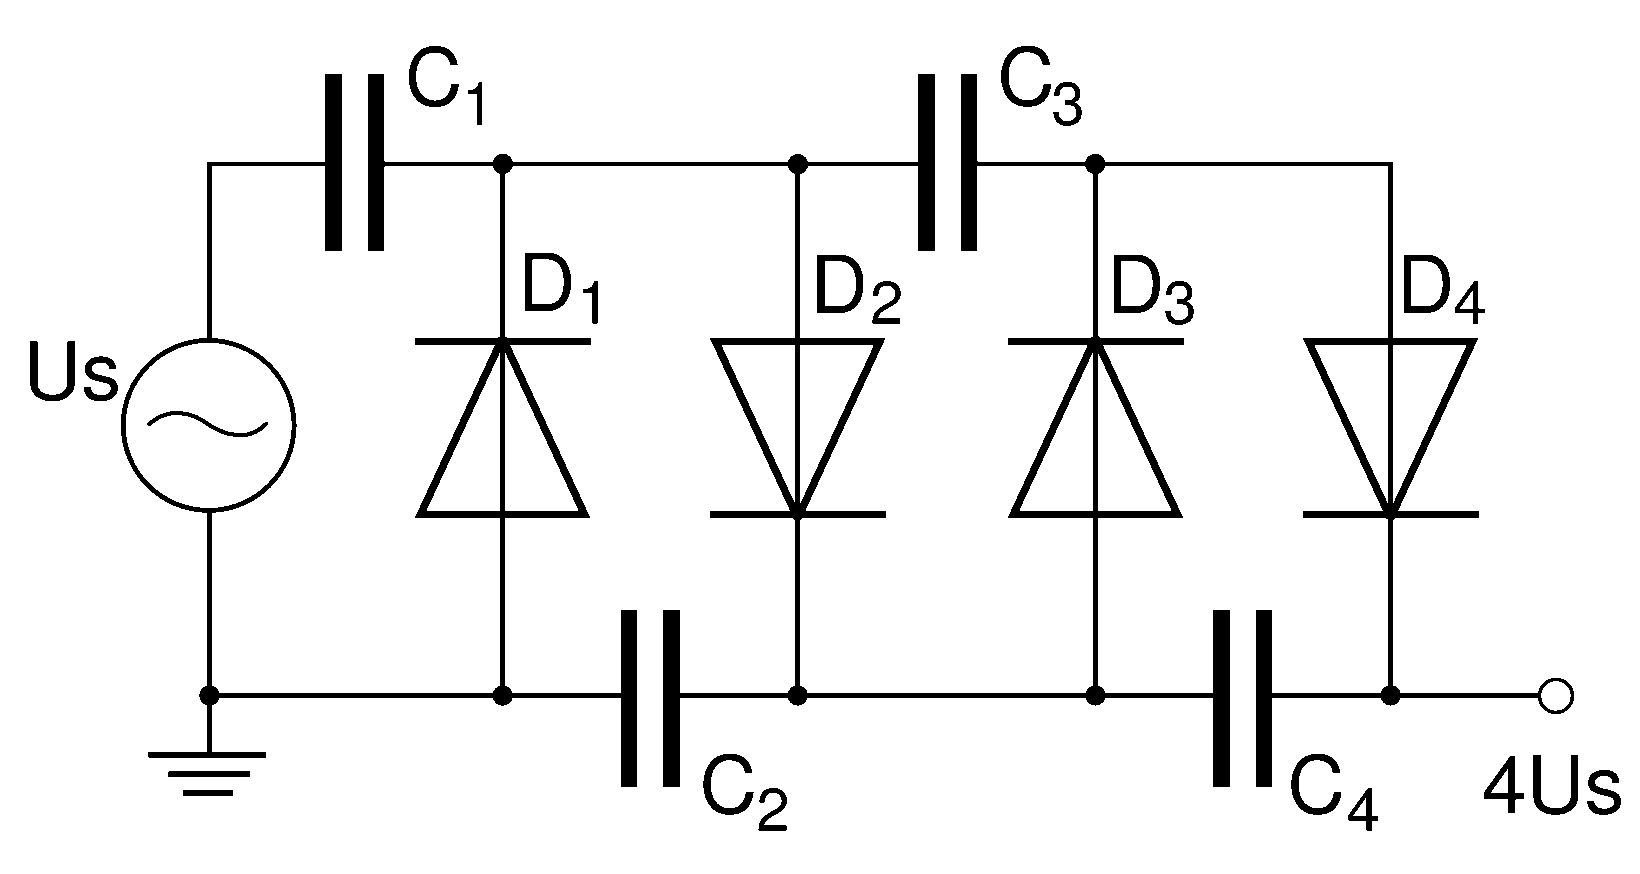 hight resolution of wiring diagram for model rectifier stack